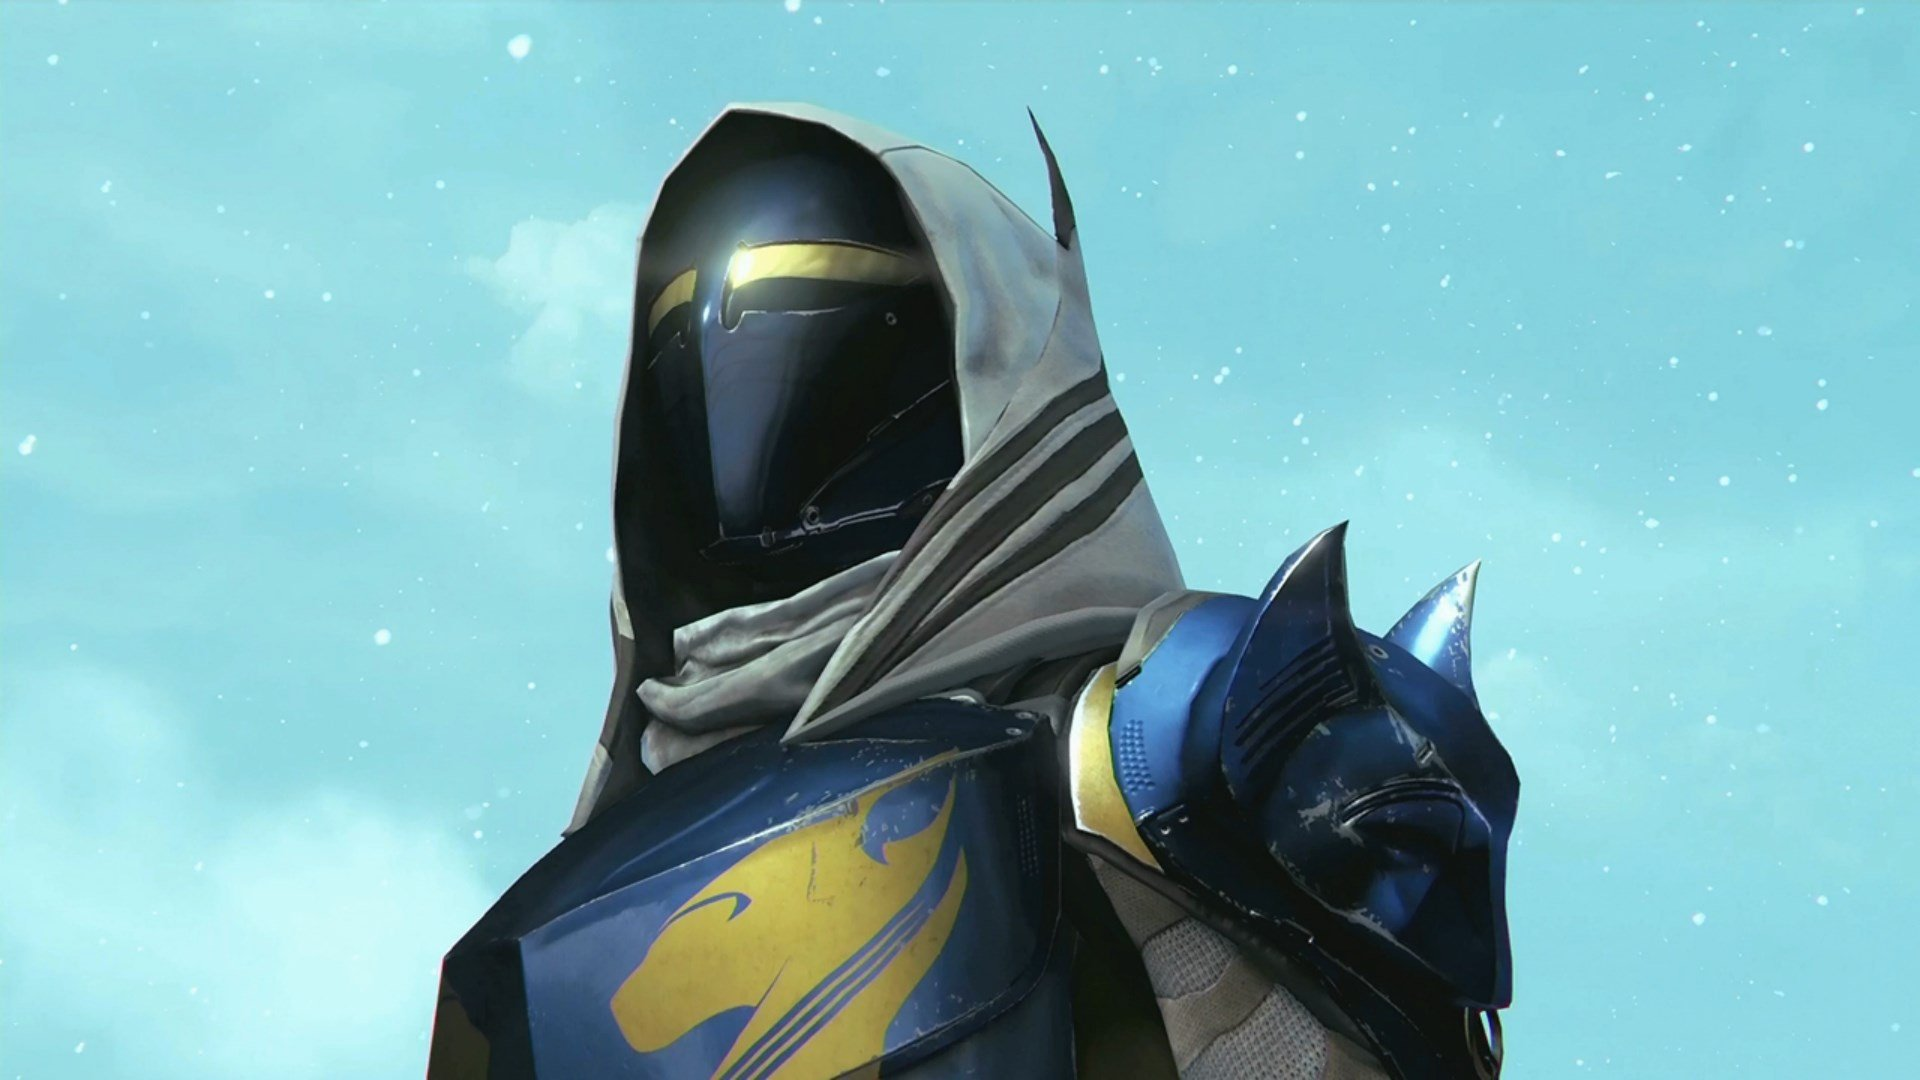 [UPDATED] Unreleased Destiny Cinematic Featuring The Vex Surfaces Online